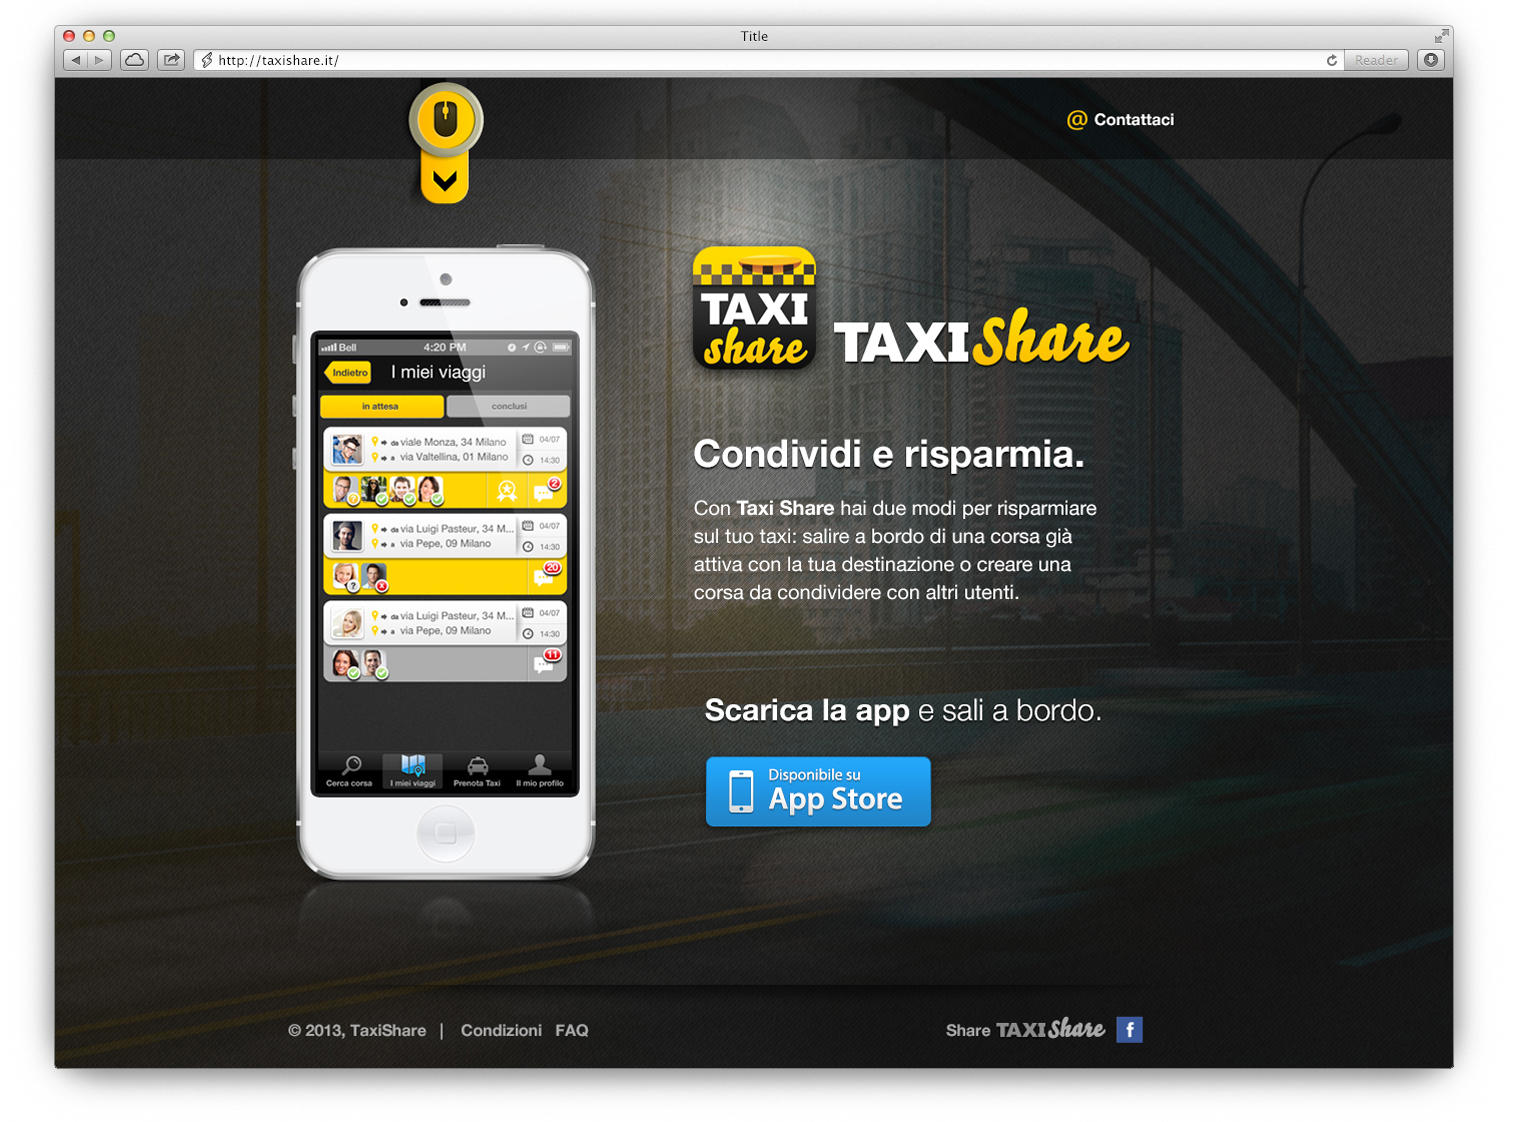 taxishare.it